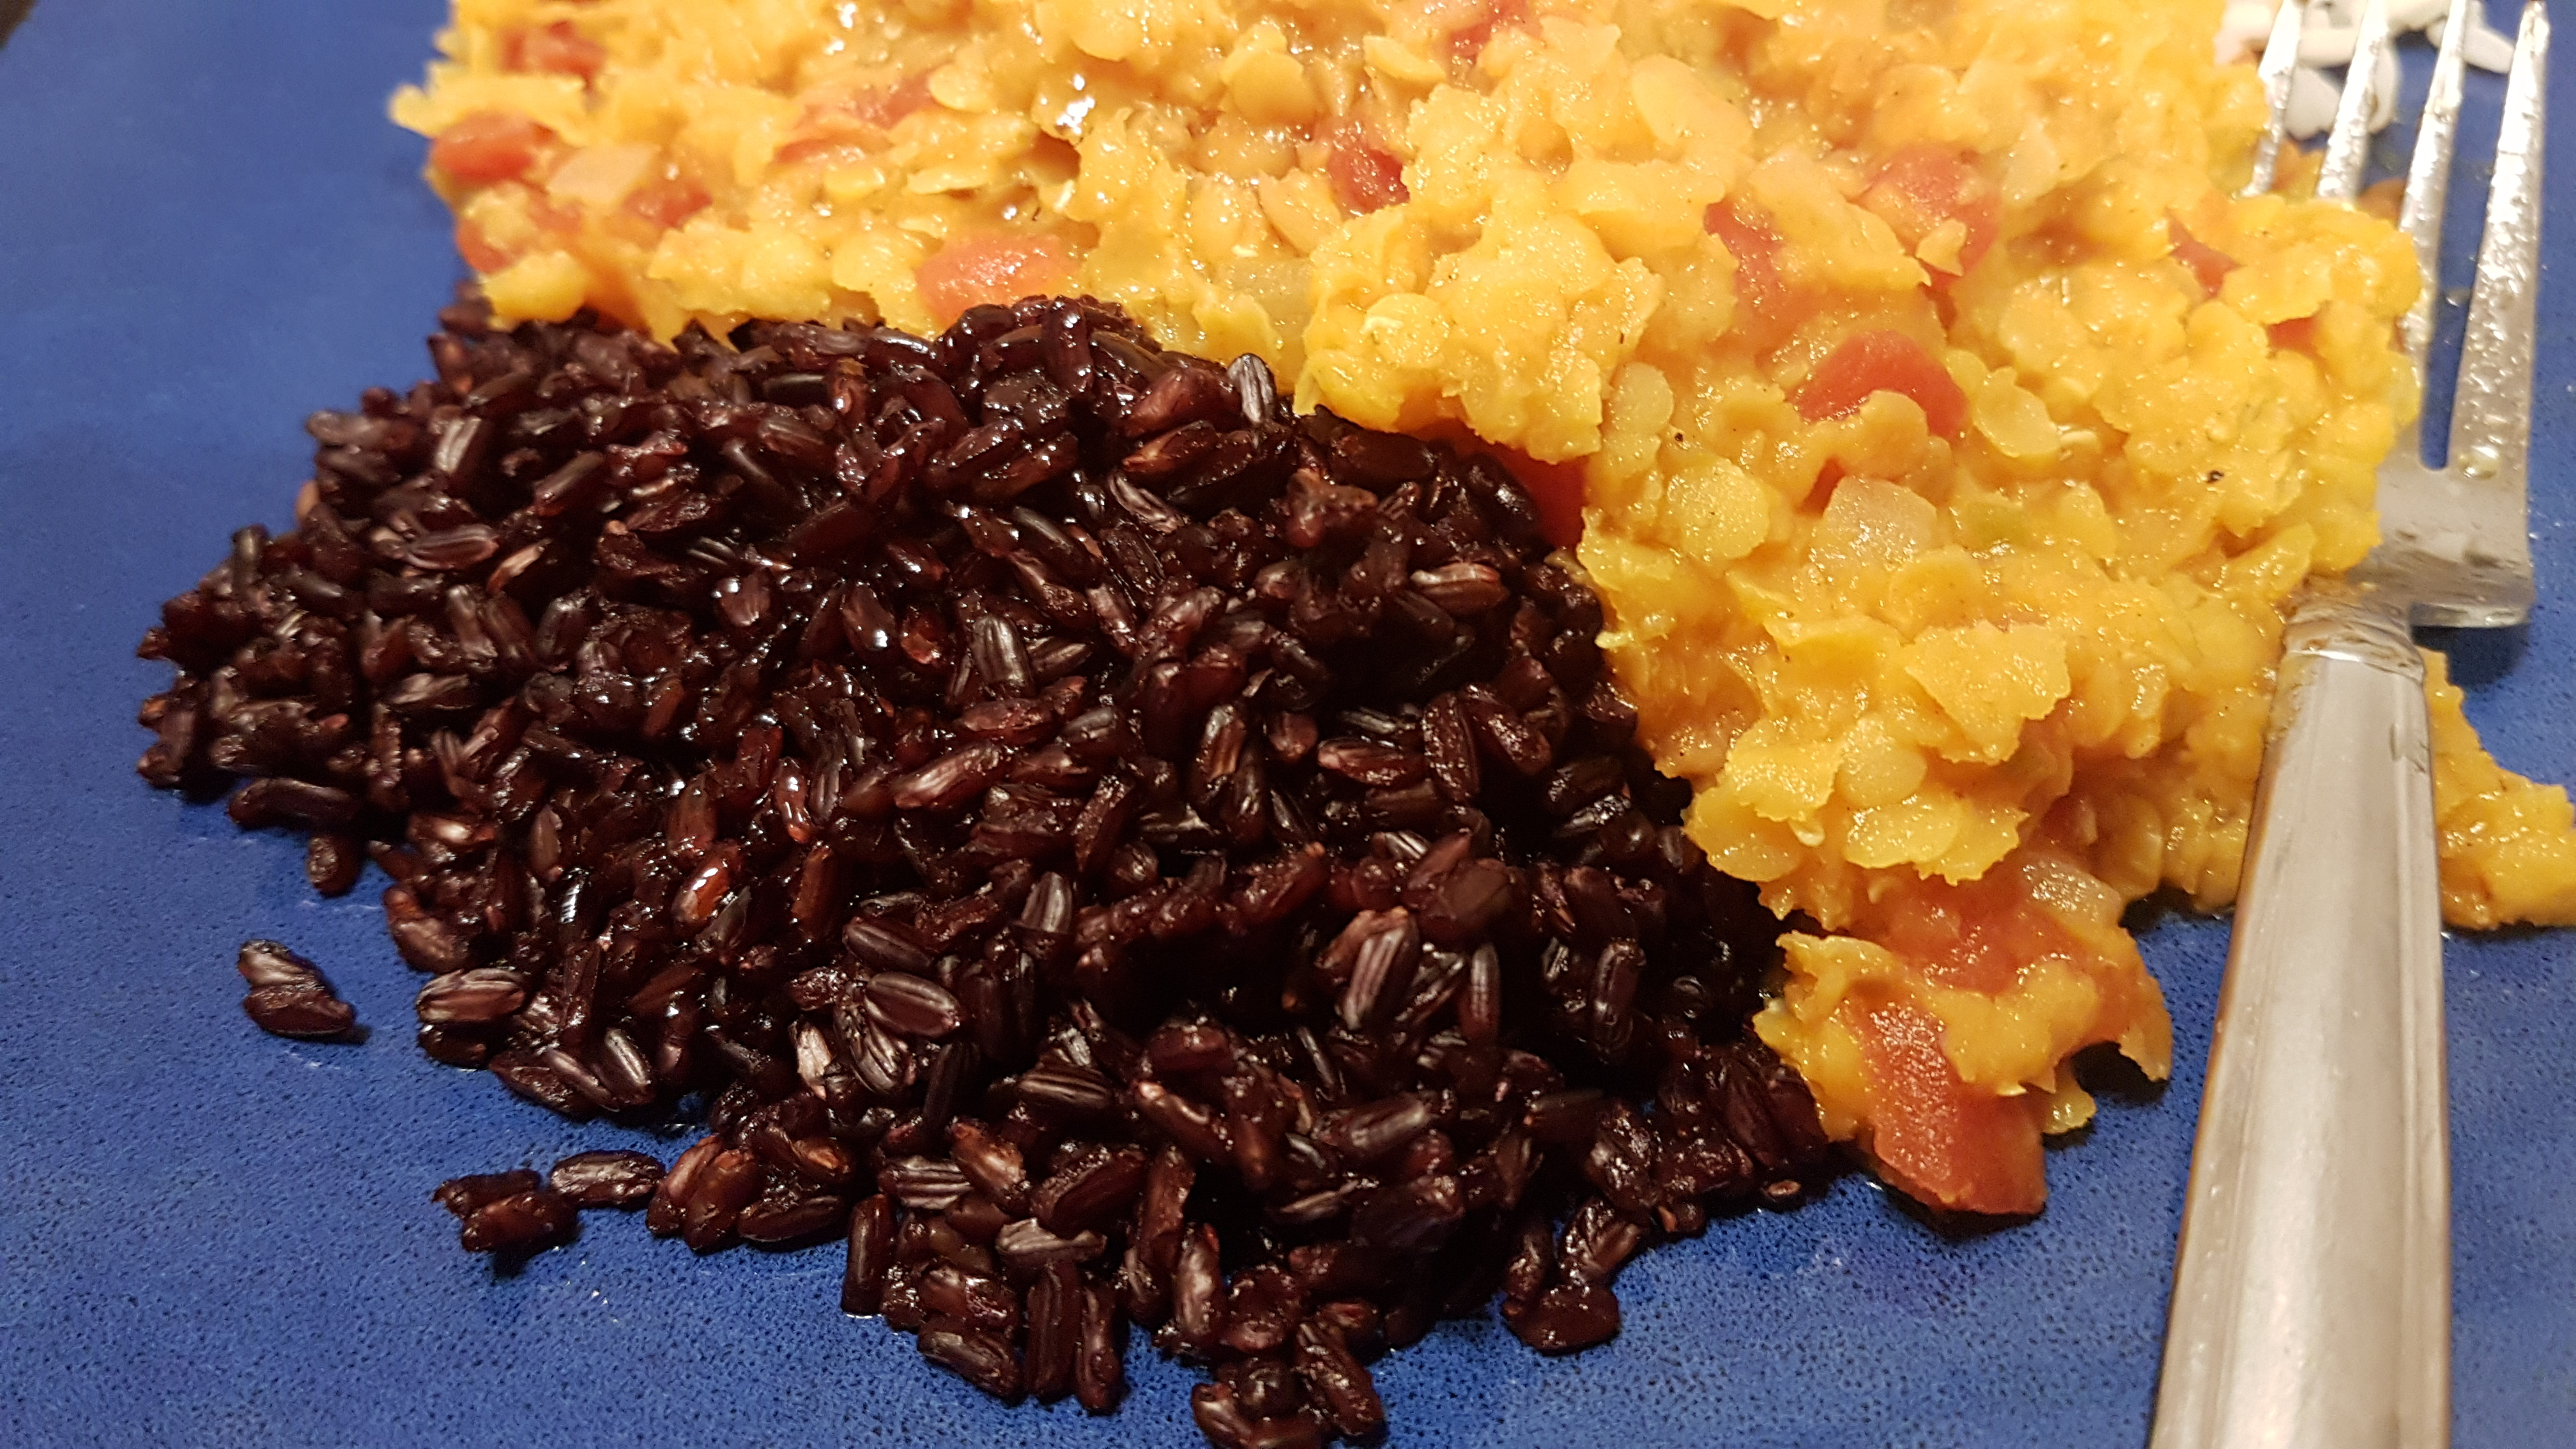 red lentils and black rice